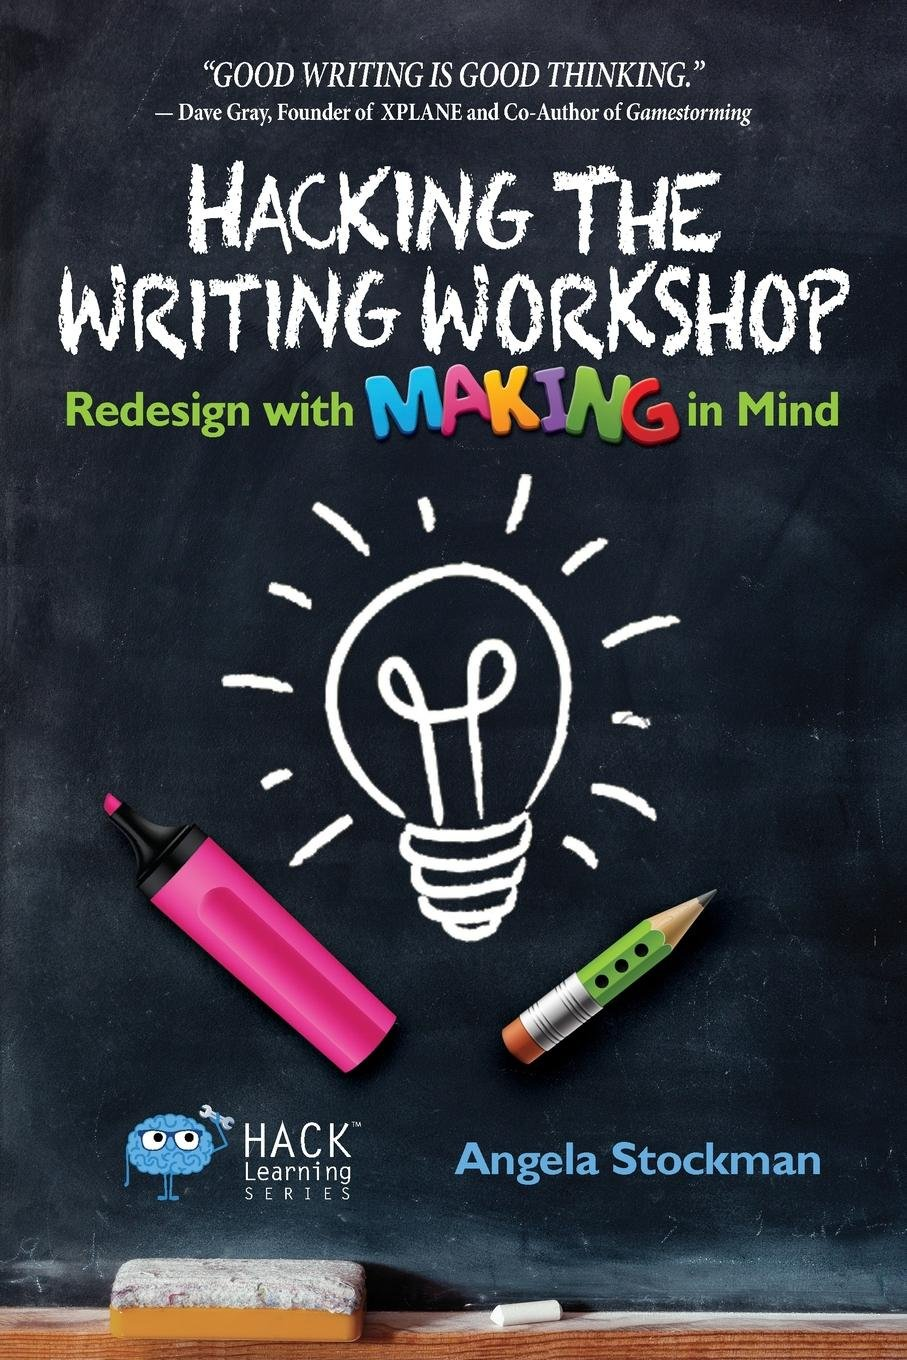 Hacking Writing Workshop Redesign Learning product image